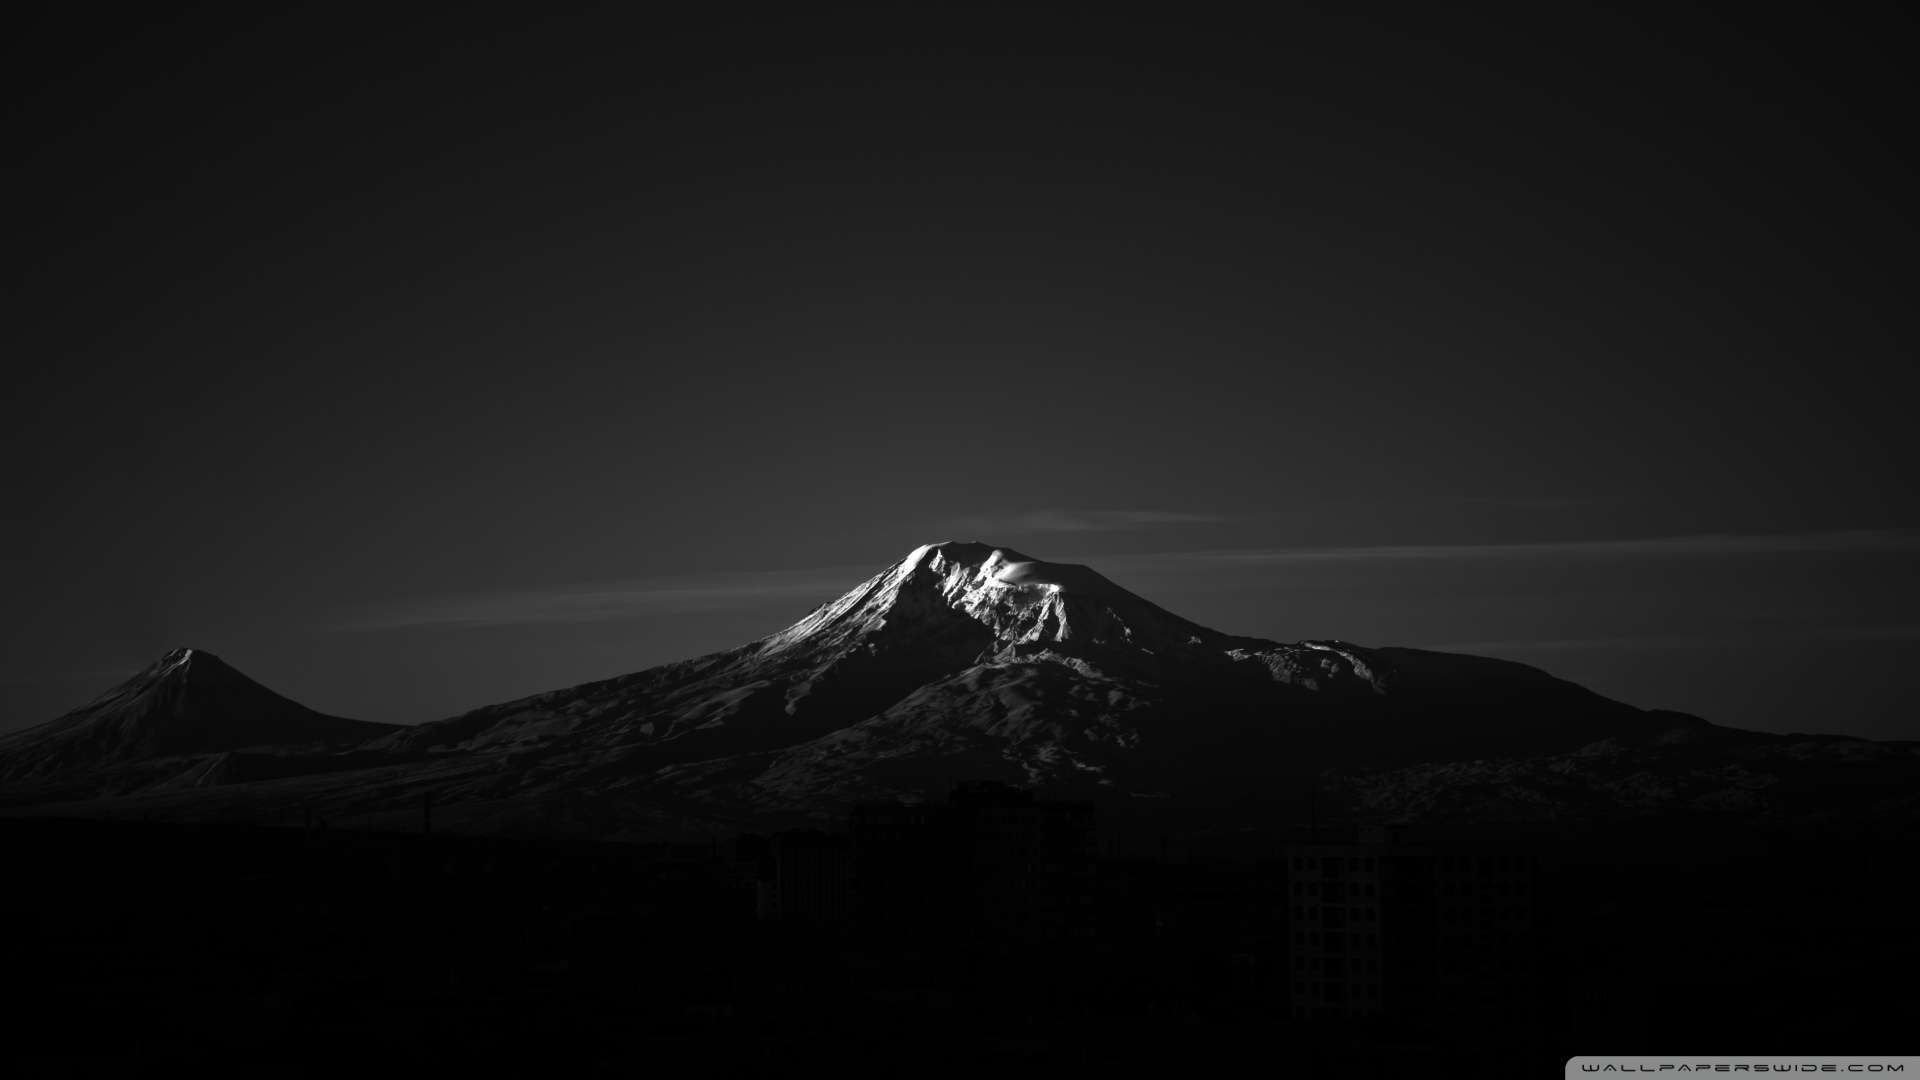 Ararat Wallpaper 1080p Hd In 2019 Dark Wallpaper